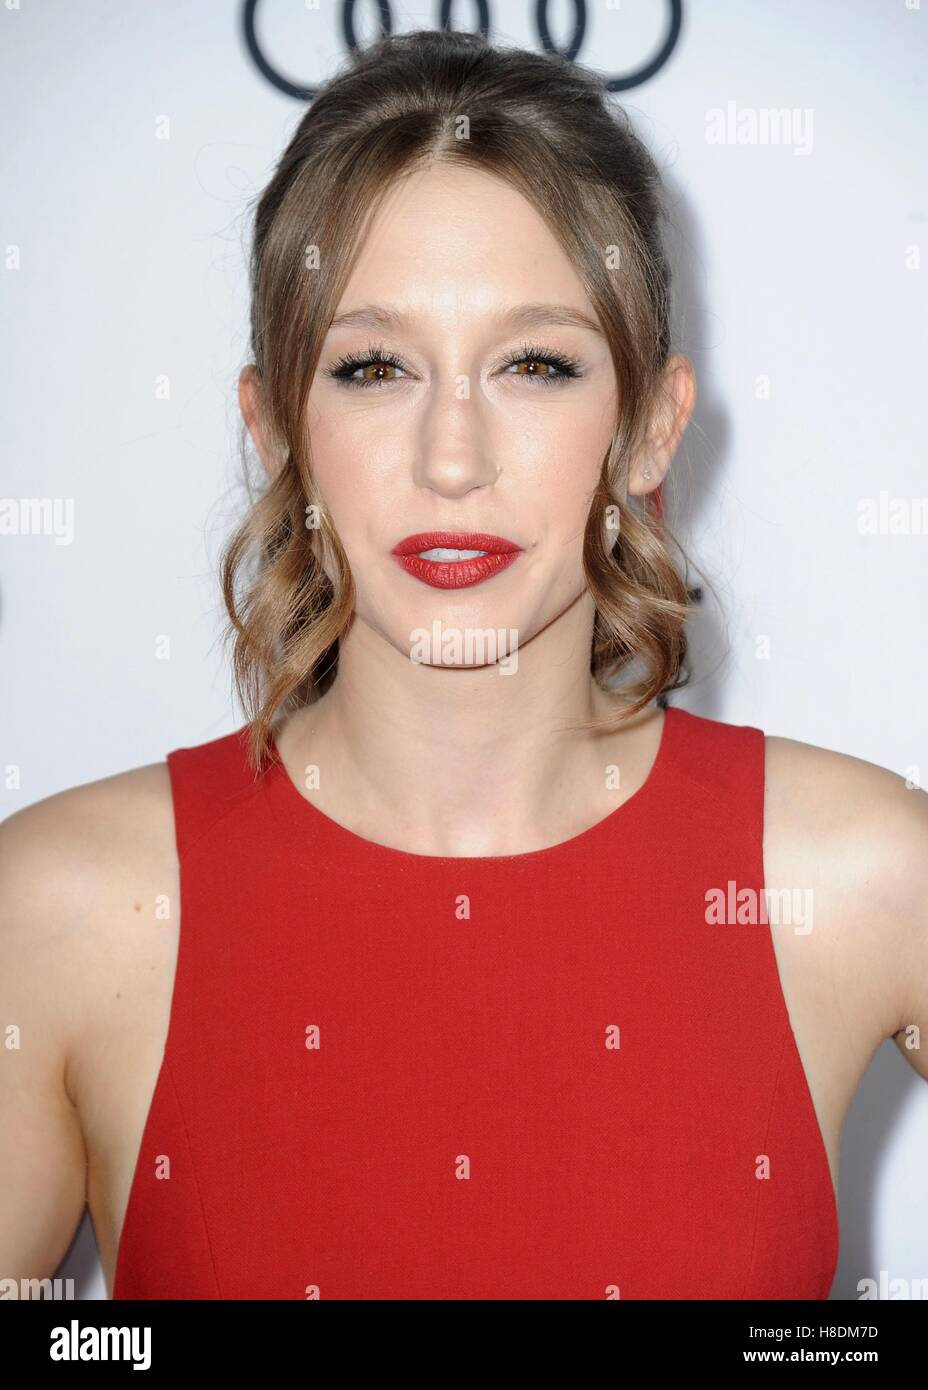 Taissa Farmiga at arrivals for RULES DON'T APPLY Premiere - AFI FEST 2016, TCL Chinese Theatre, Hollywood, CA - Stock Image